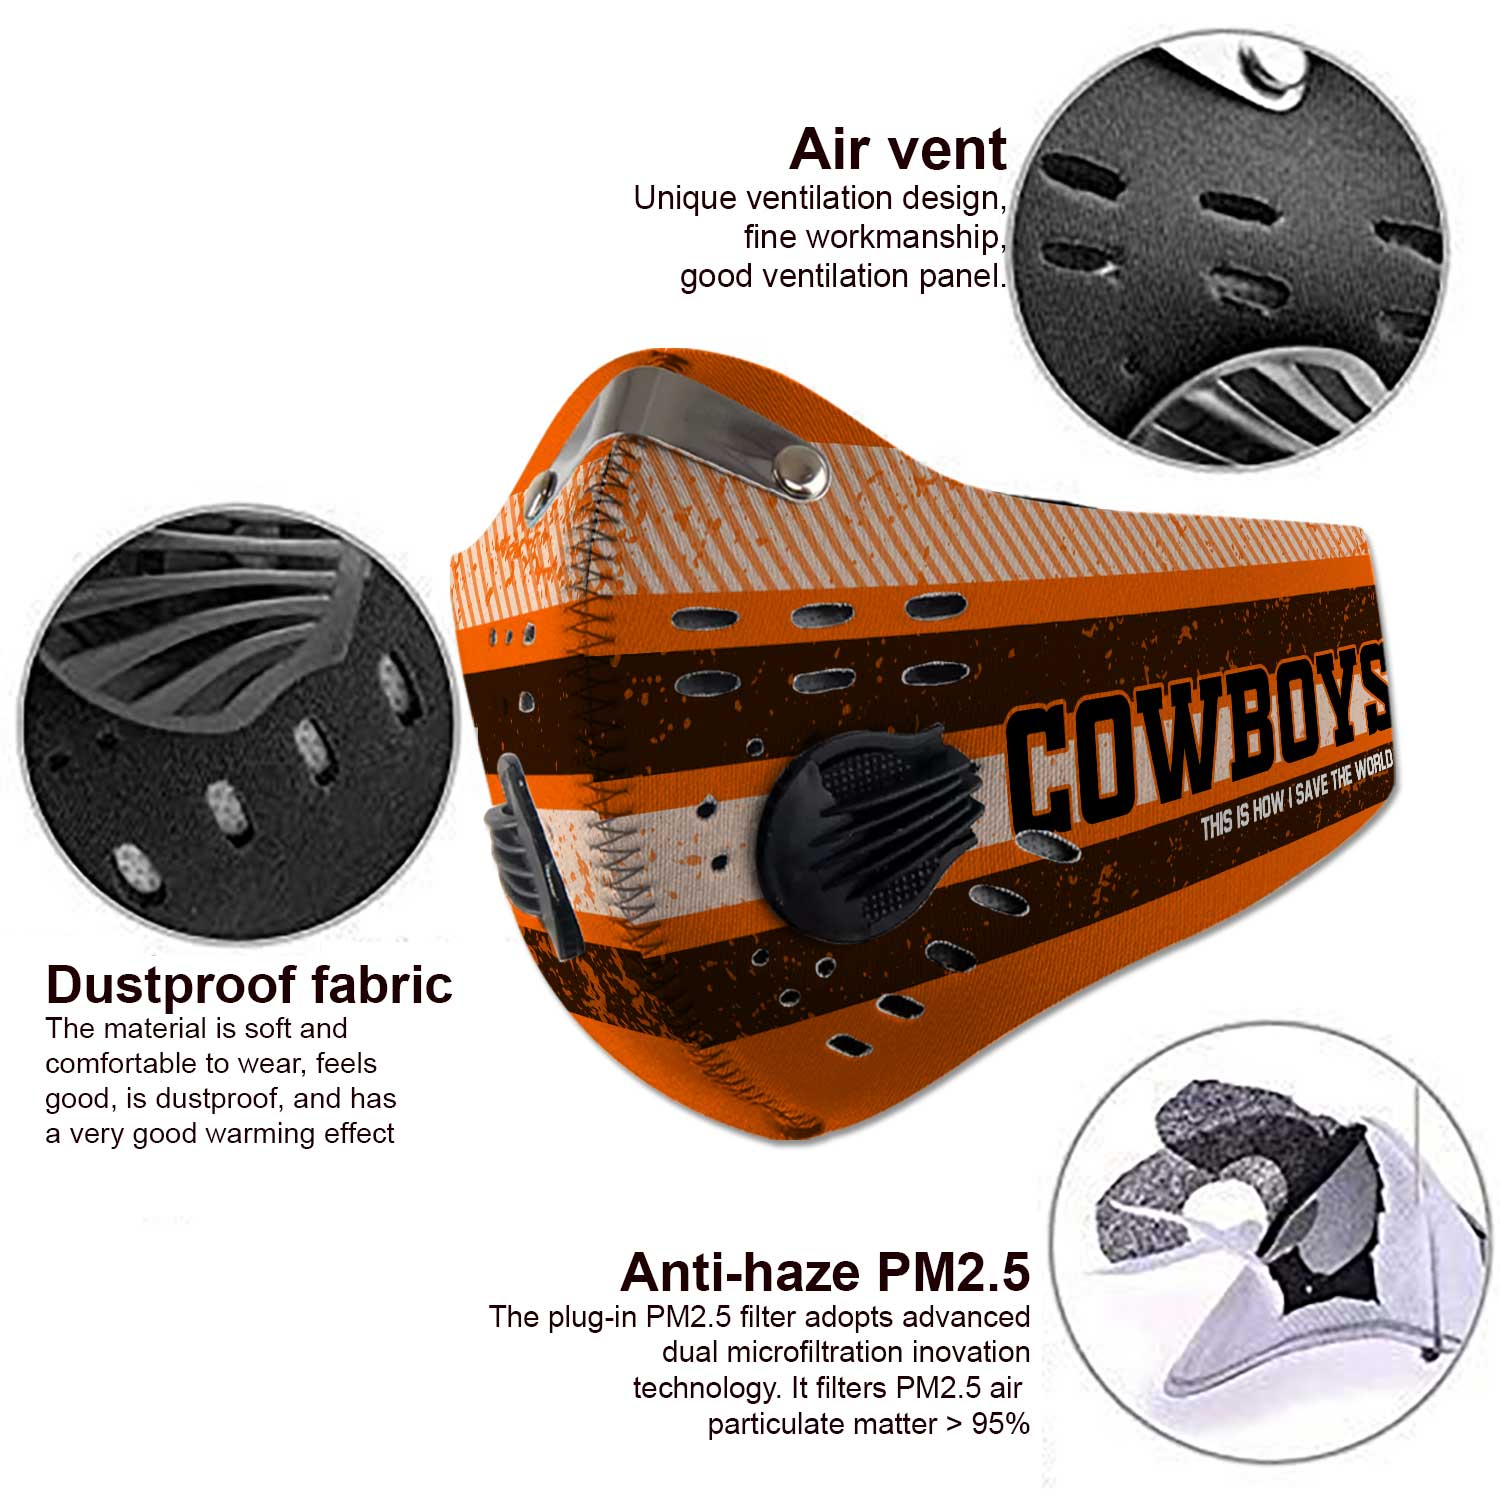 Oklahoma state cowboys this is how i save the world face mask 4